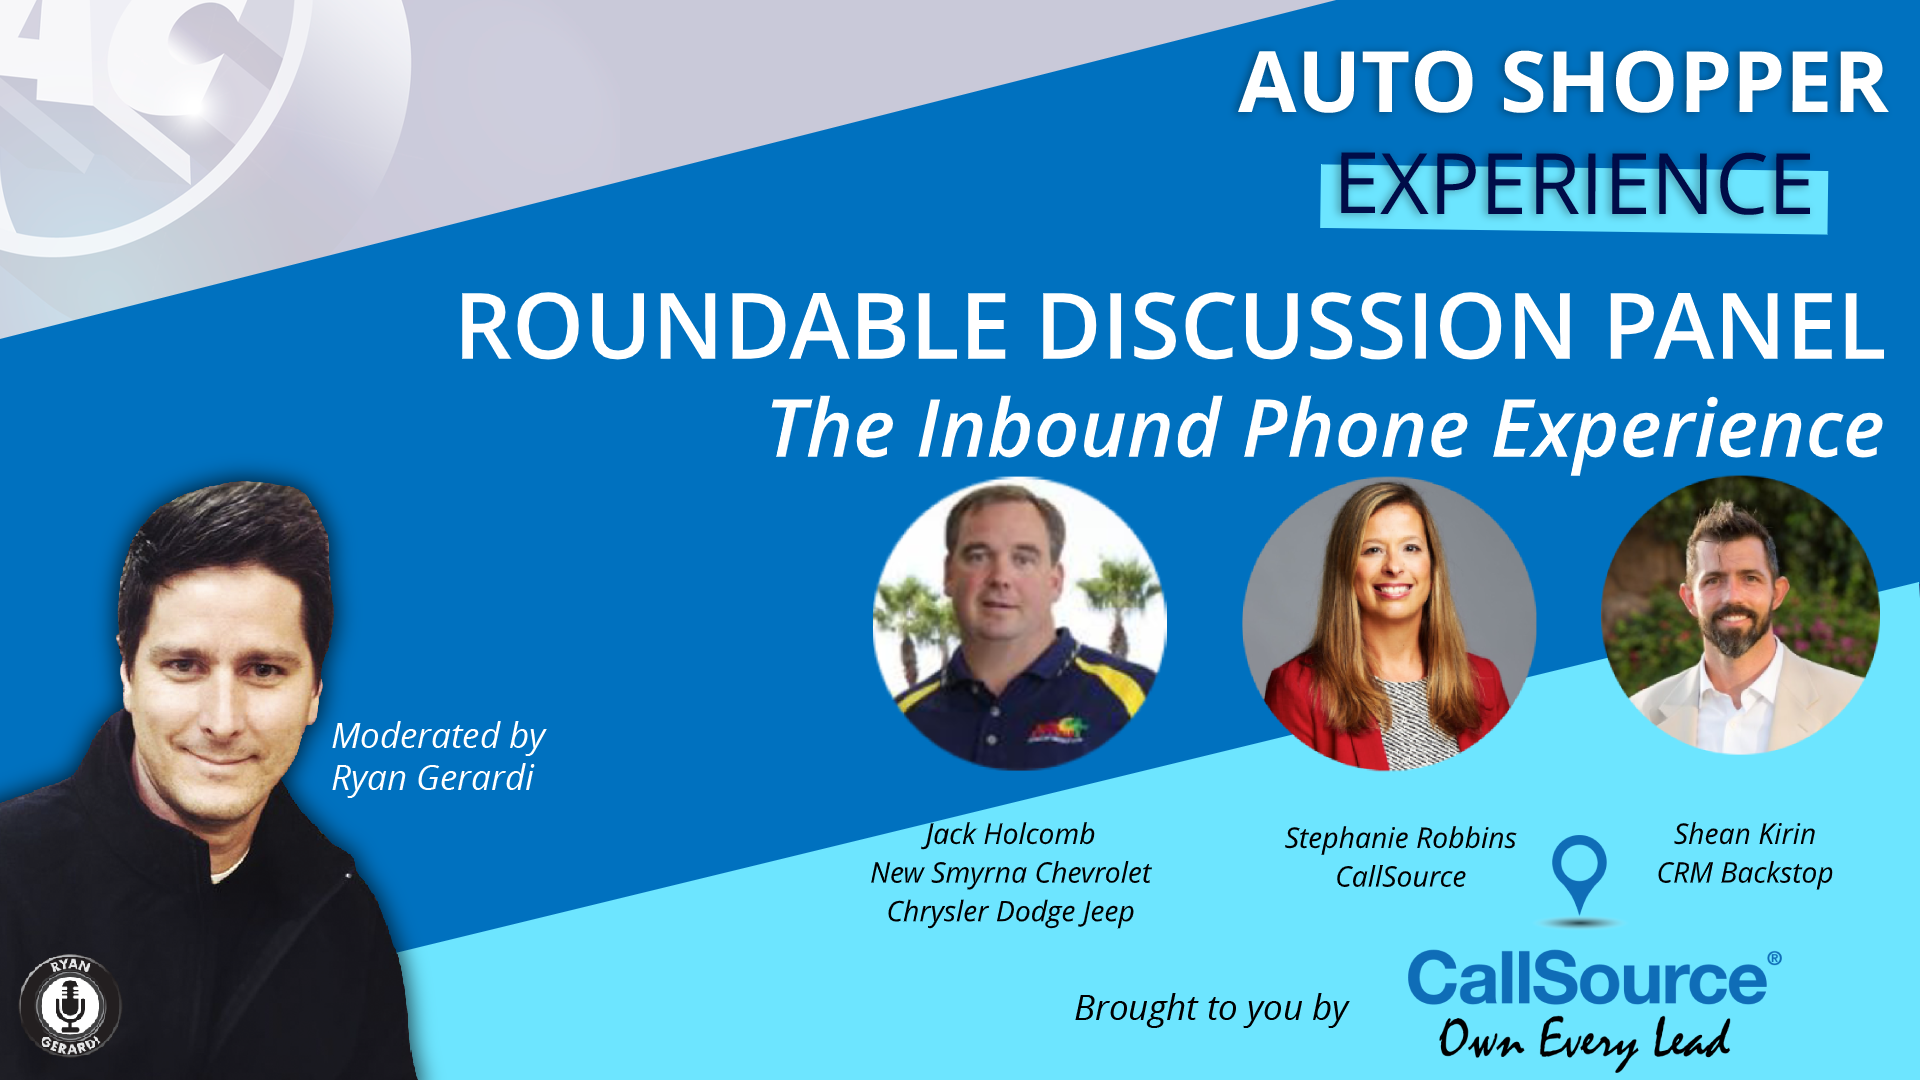 THU NOV 7. The Auto Shopper Inbound Phone Experience  💬 Panel Discussion